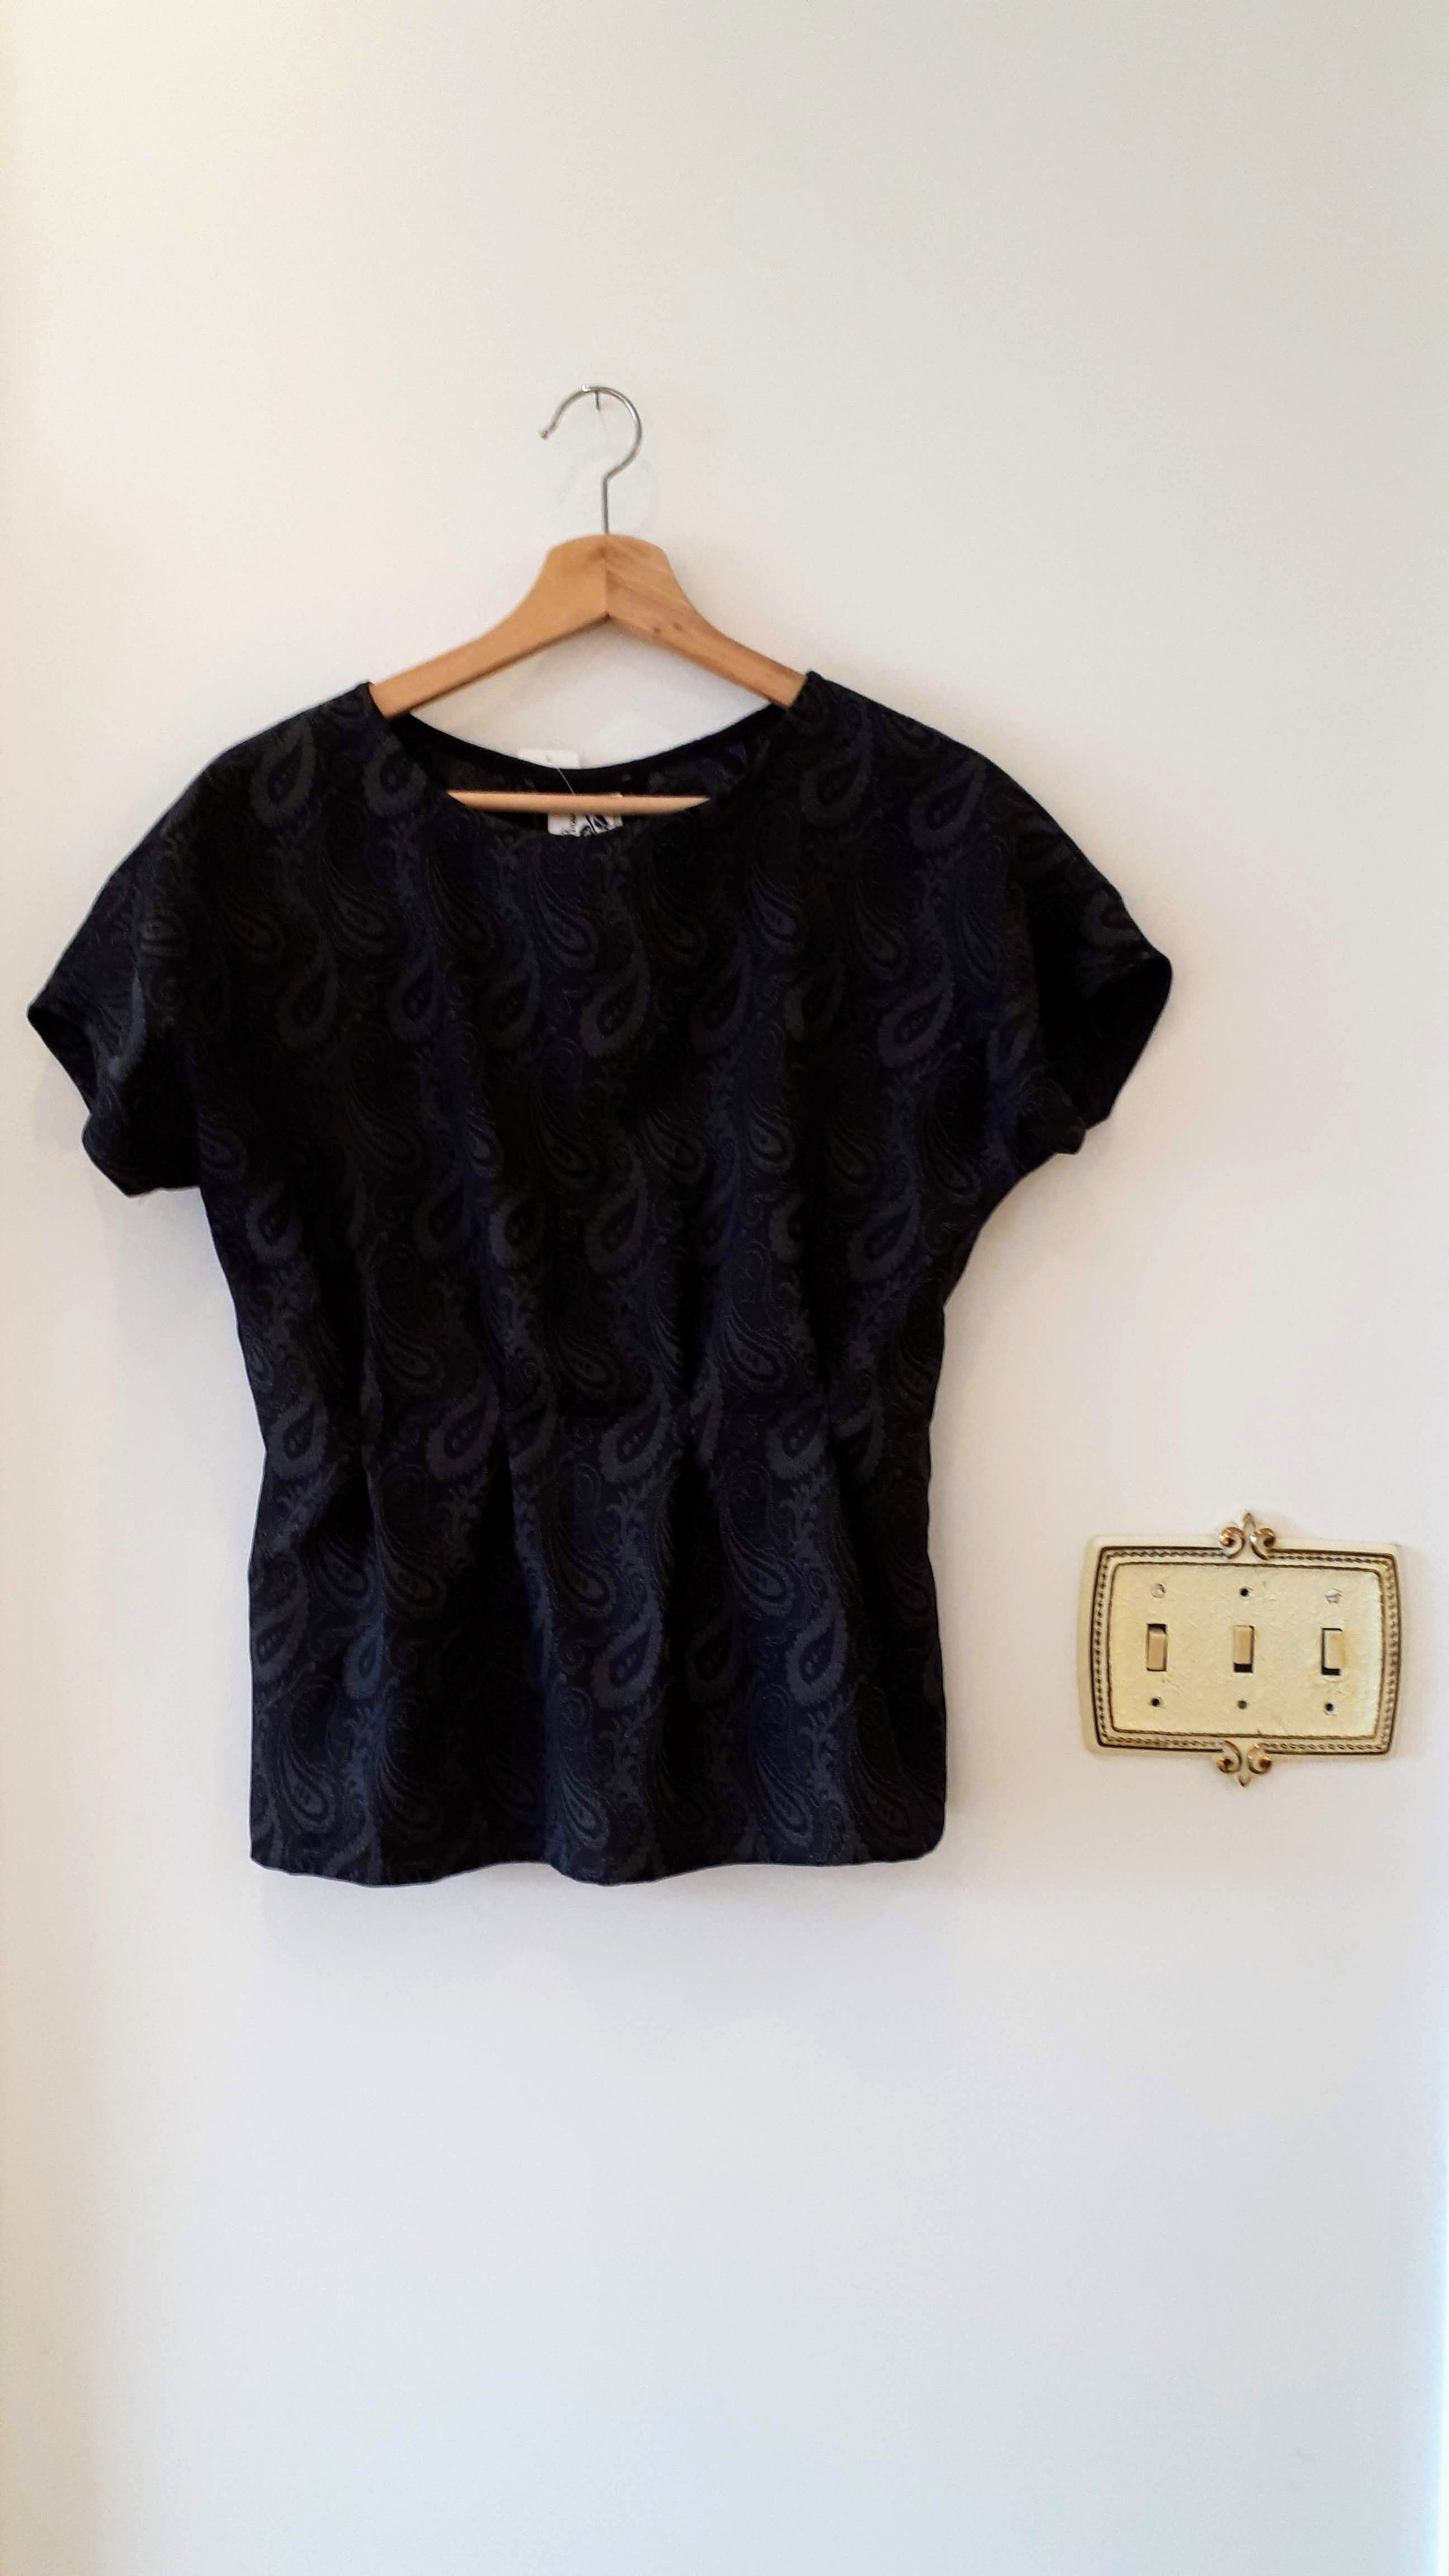 K. Brower top; Size S, $36